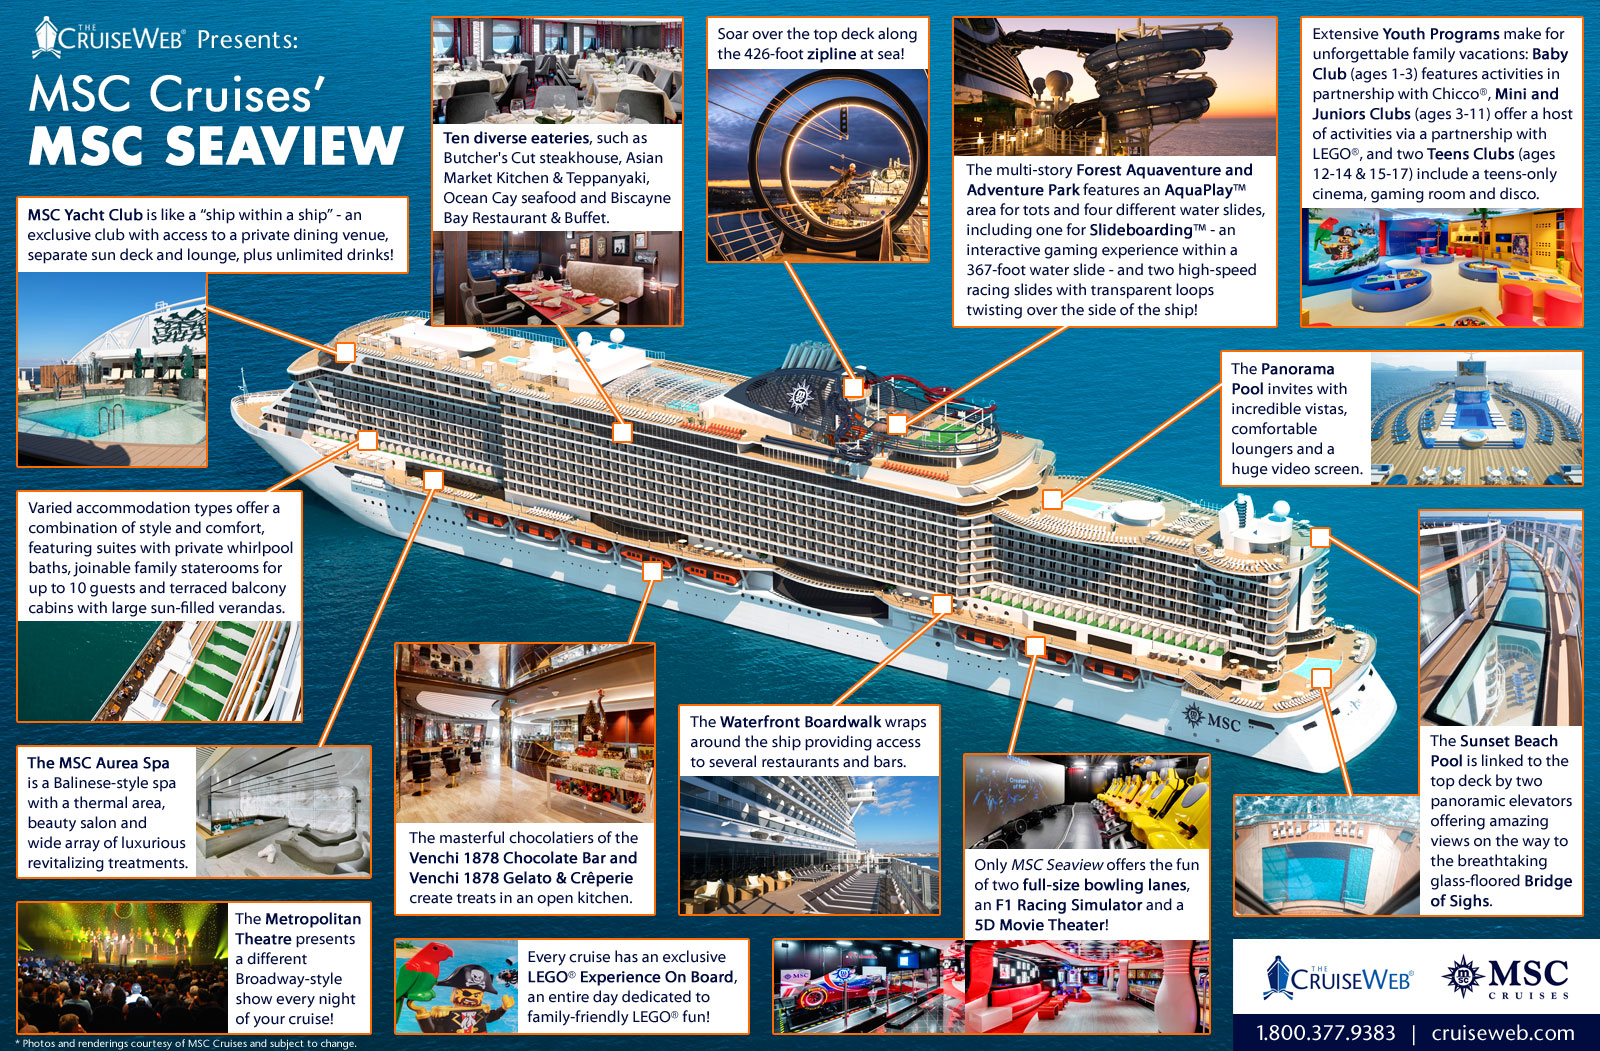 explore msc cruises� newest cruise ship msc seaview with